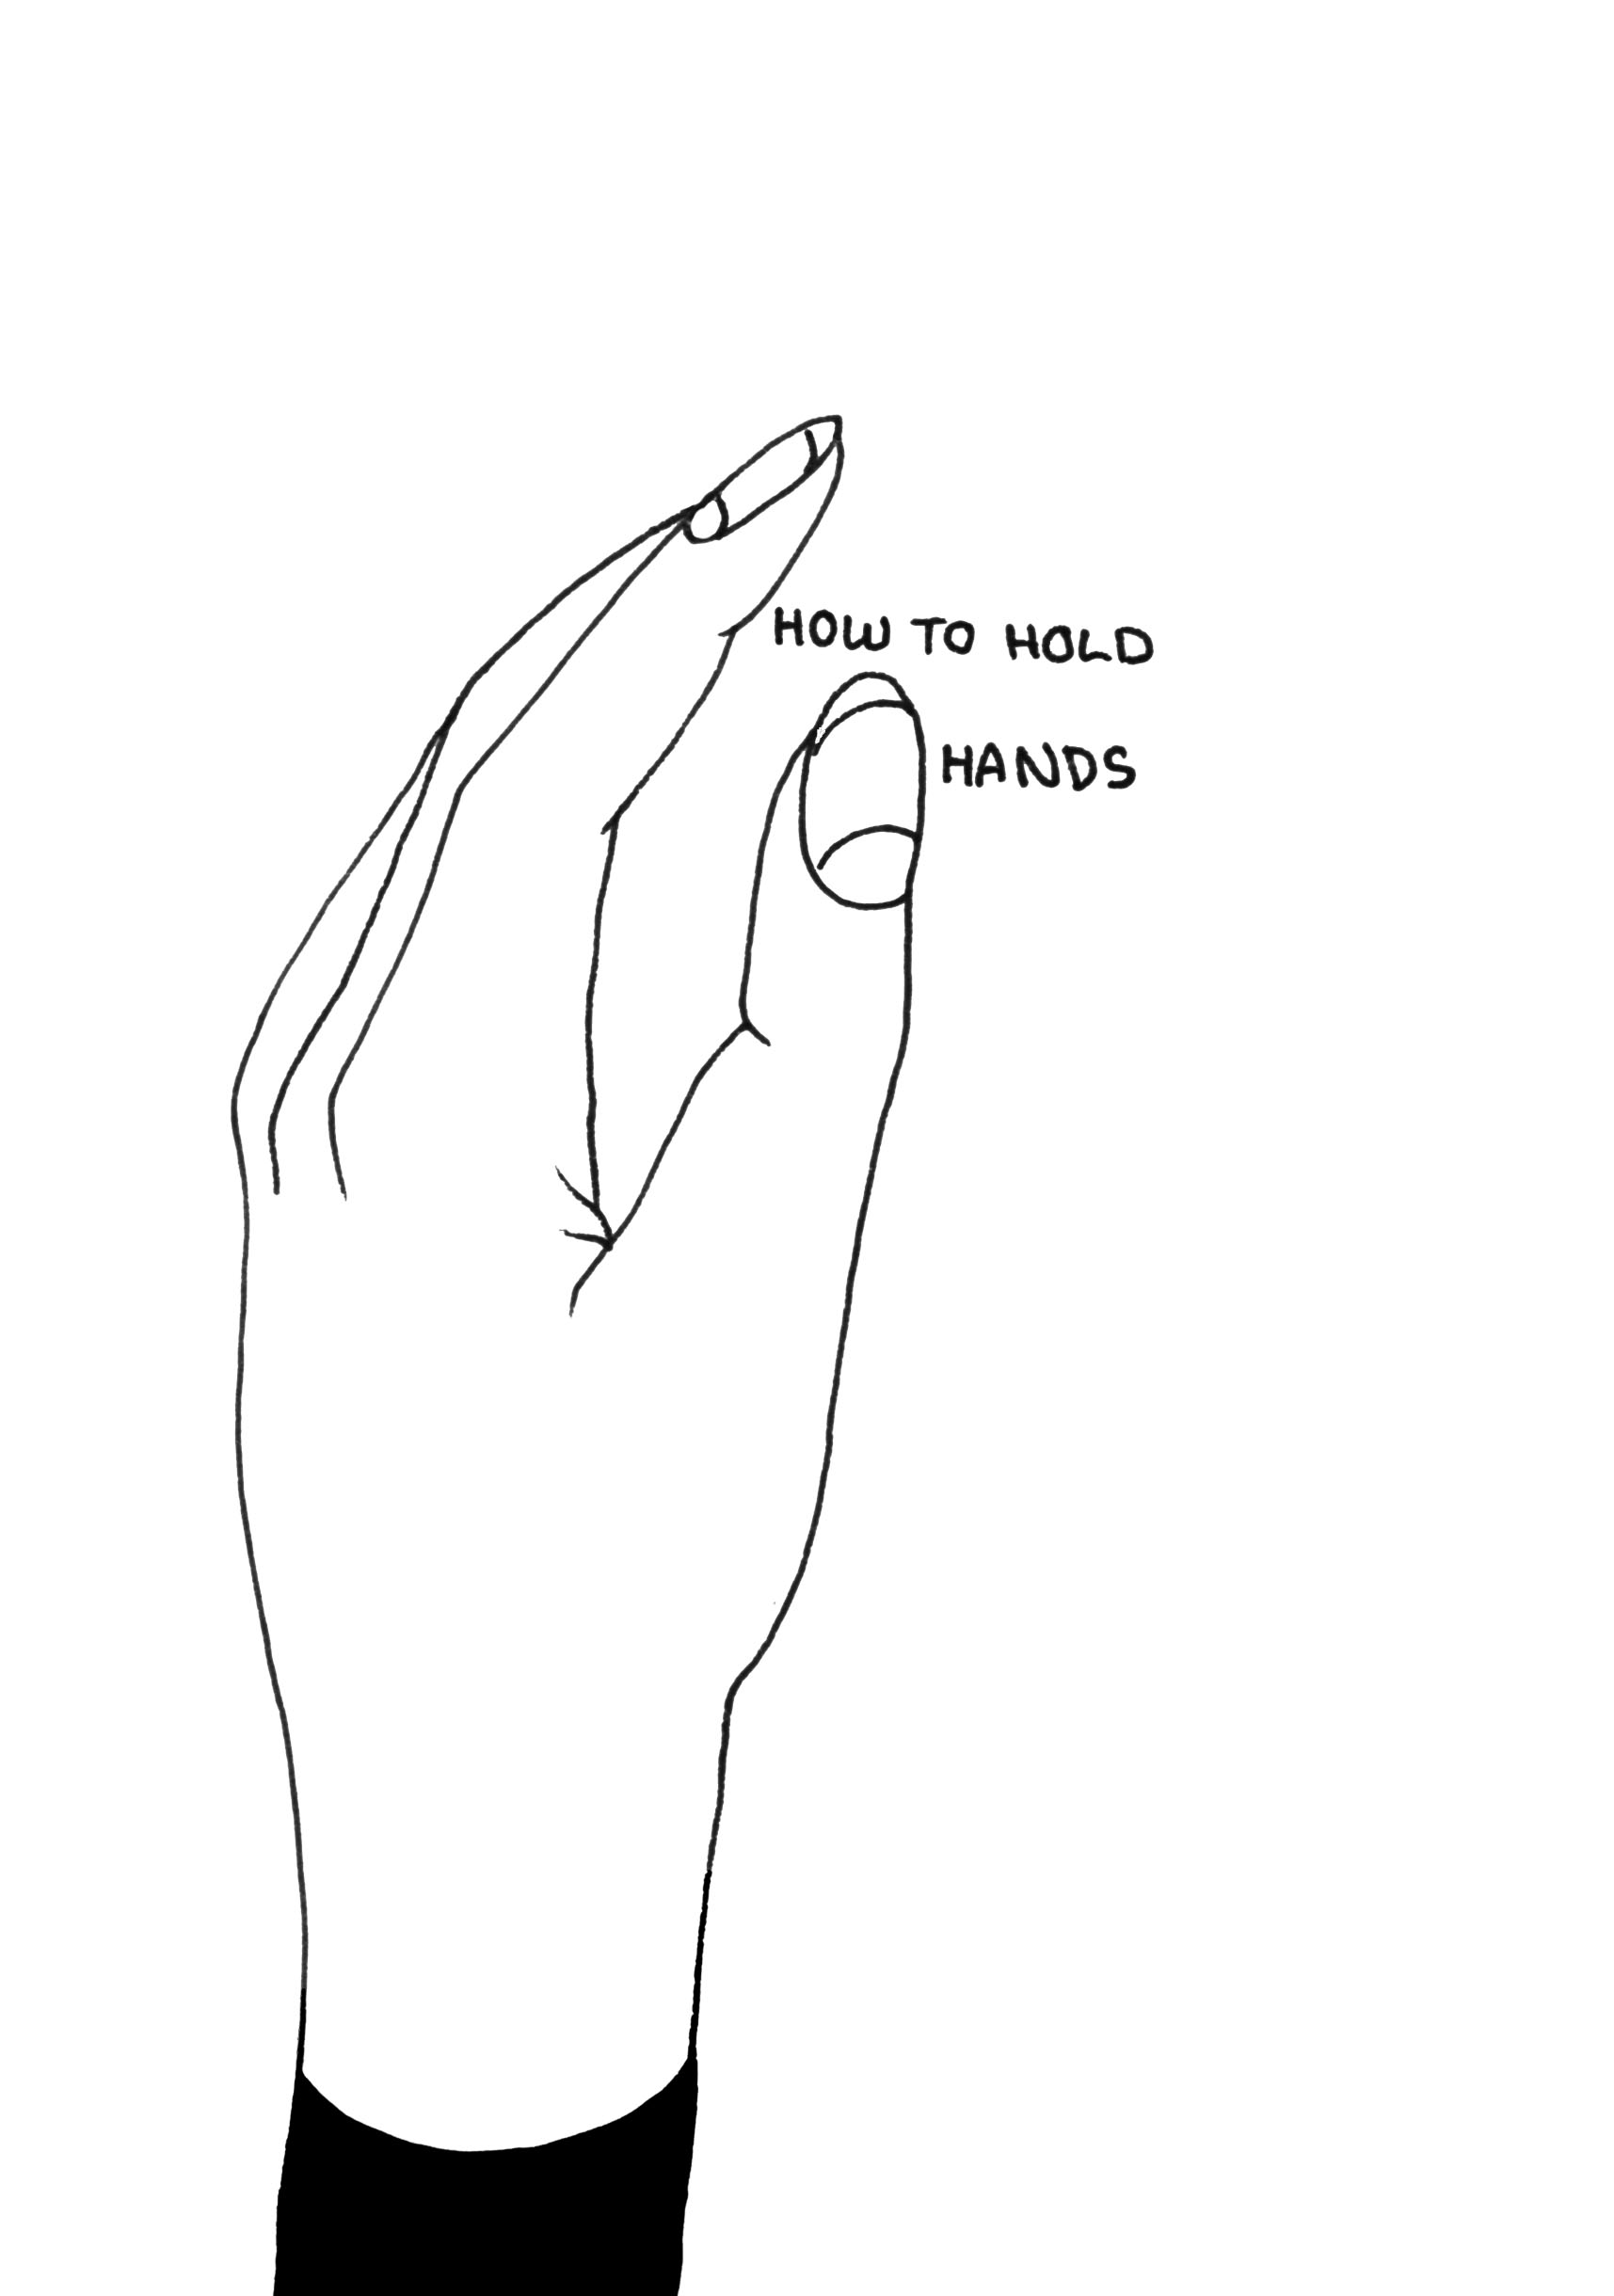 How to hold hands.jpeg